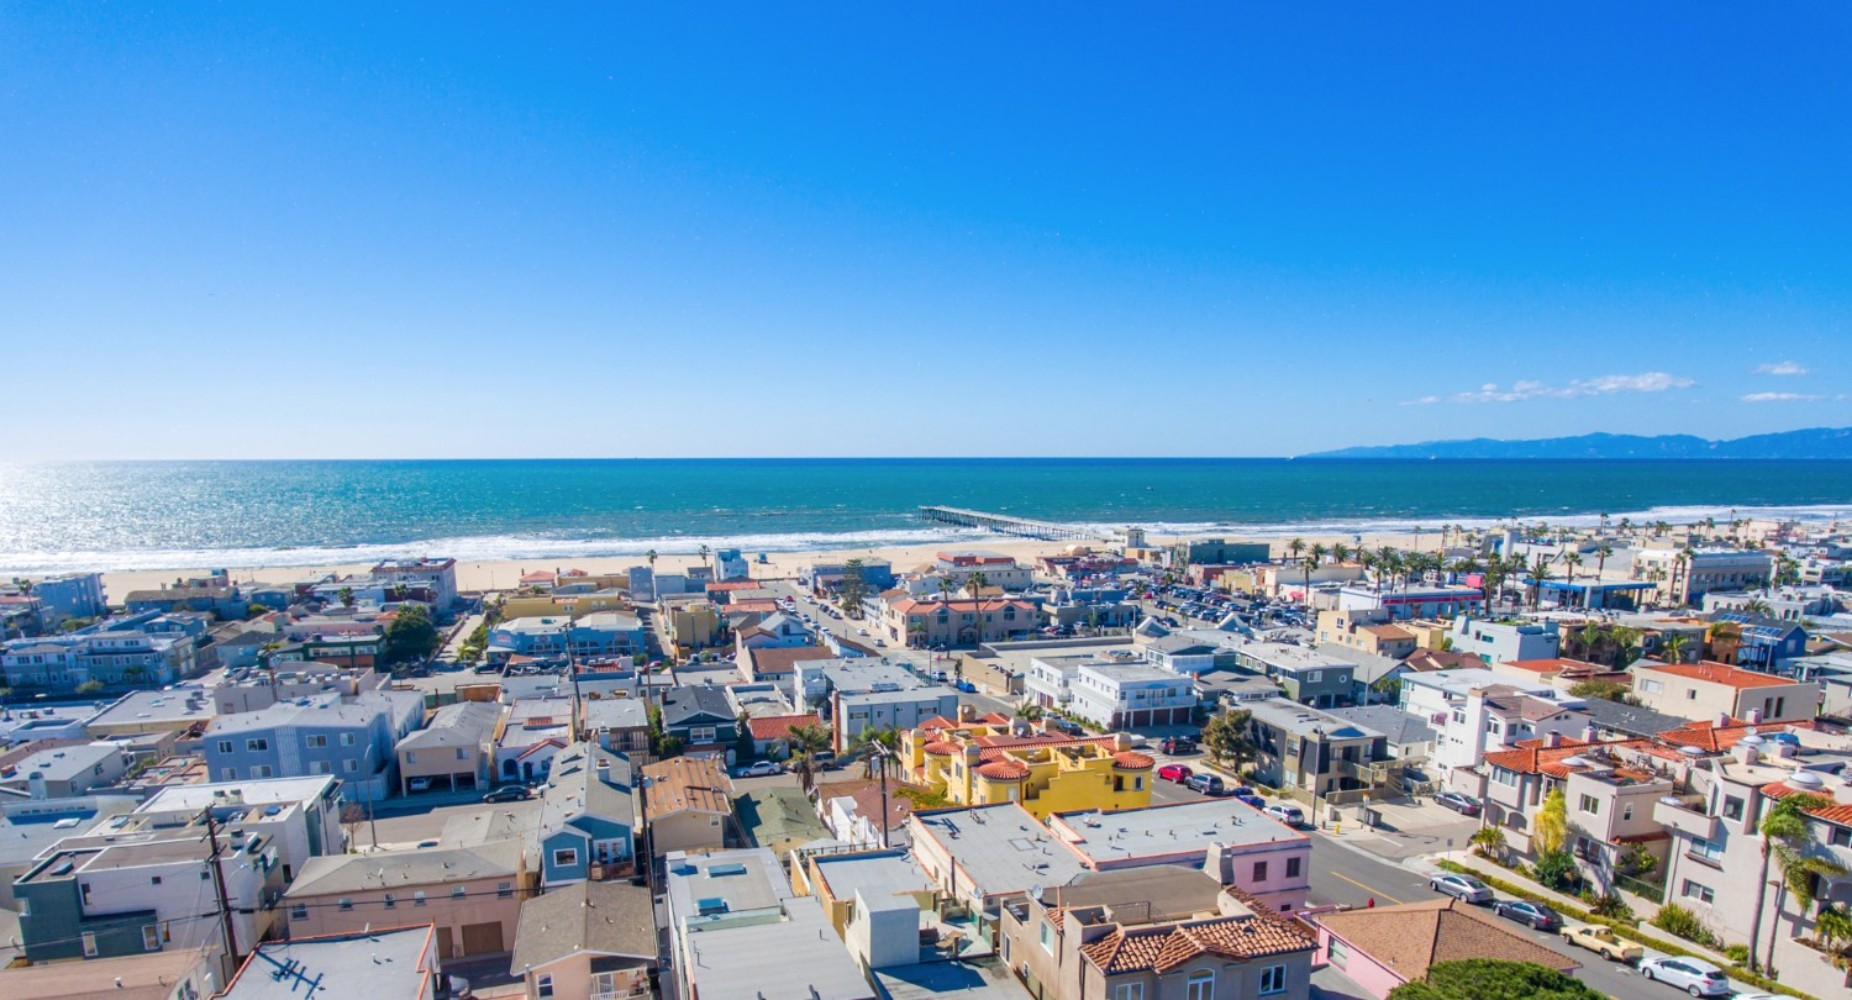 HB Ocean View Townhouse Aerial View